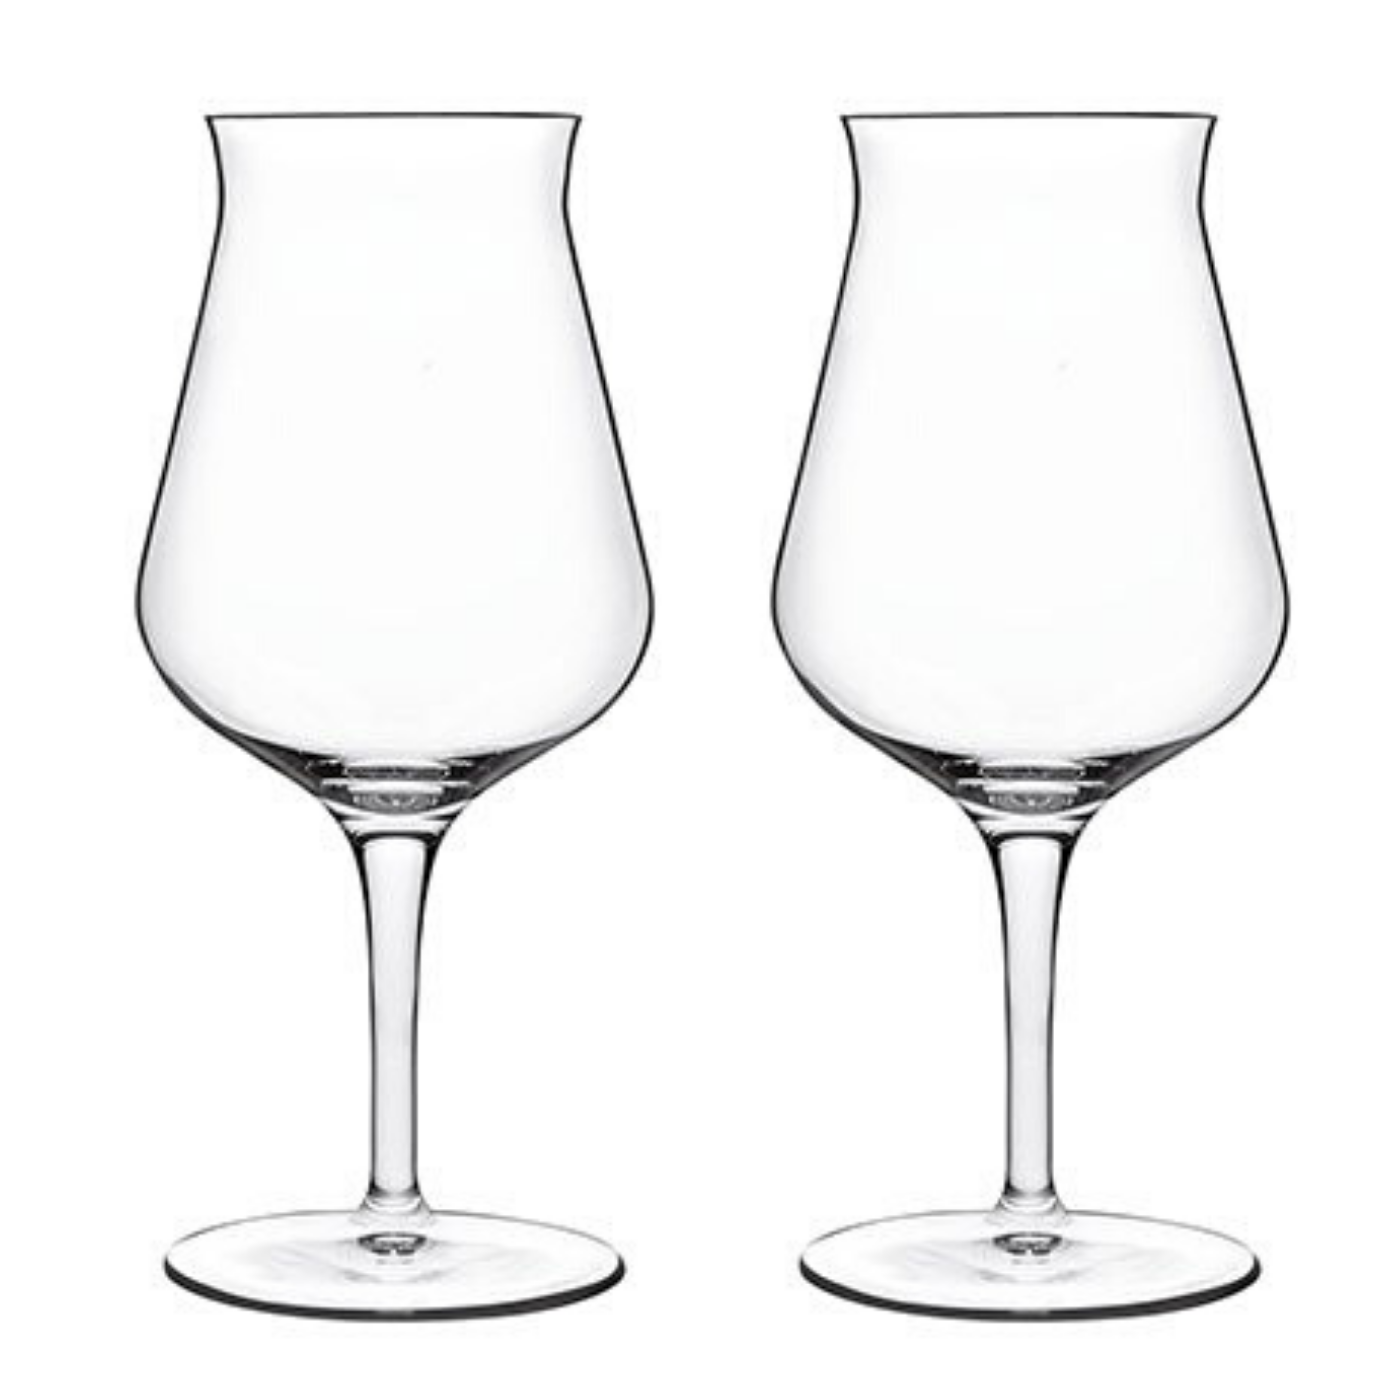 Birrateque Beer Tasting Glasses (set of 2)